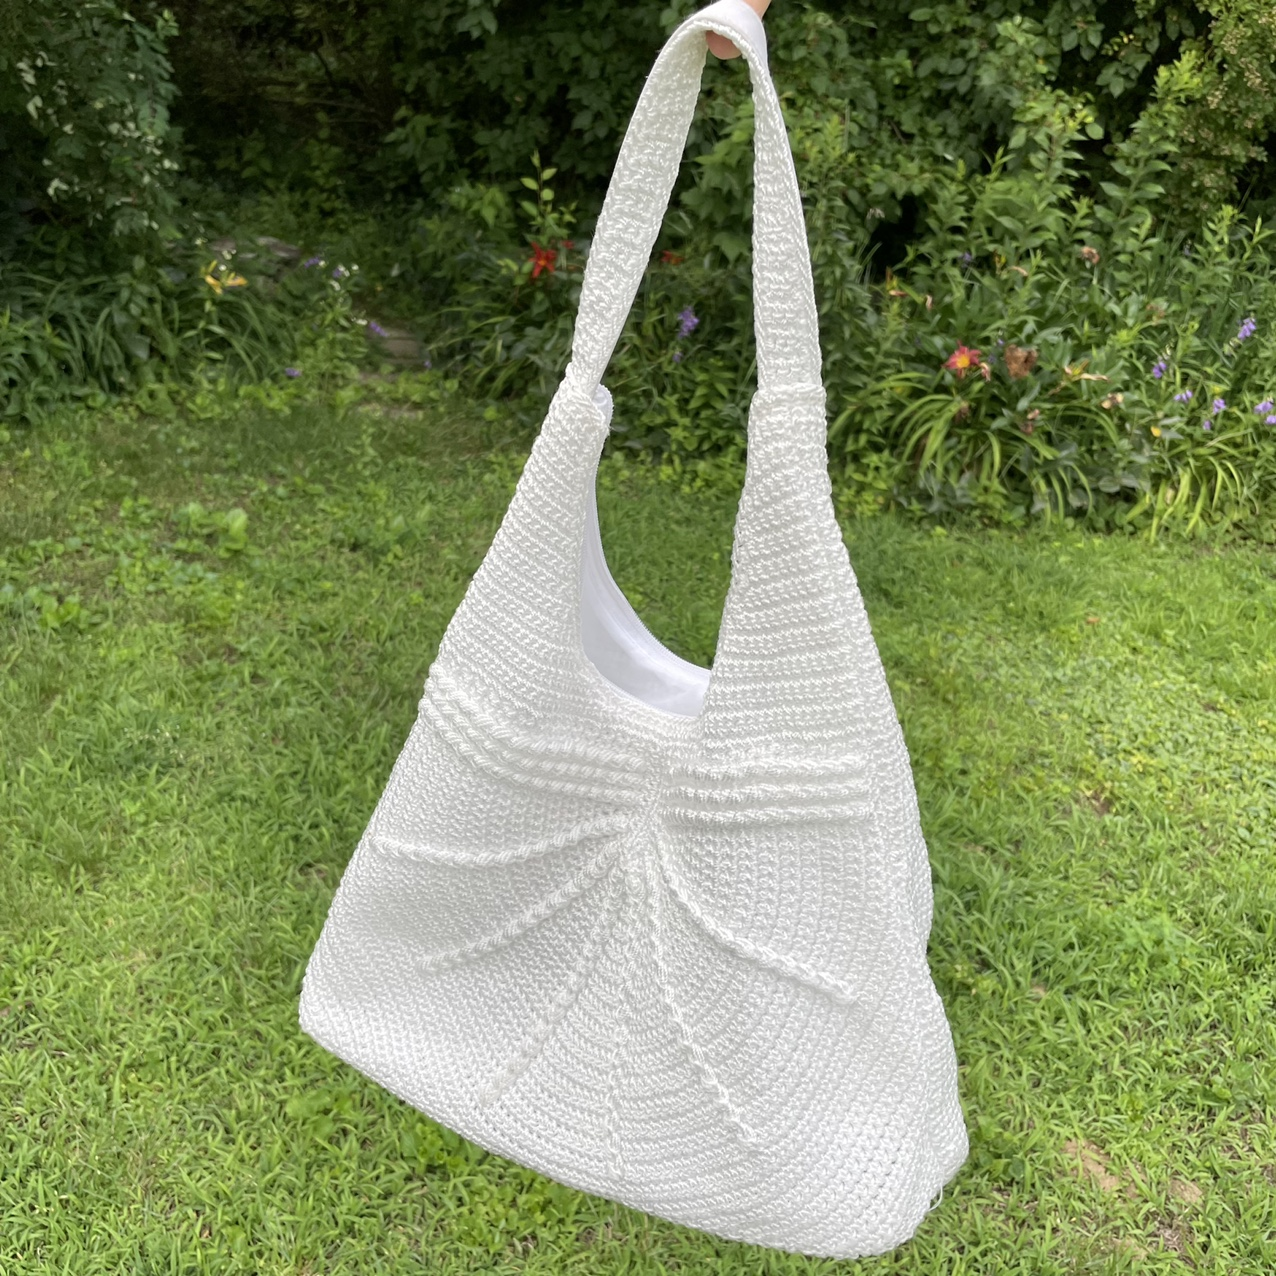 Product Image 1 - white crochet knit bag🤍 has a